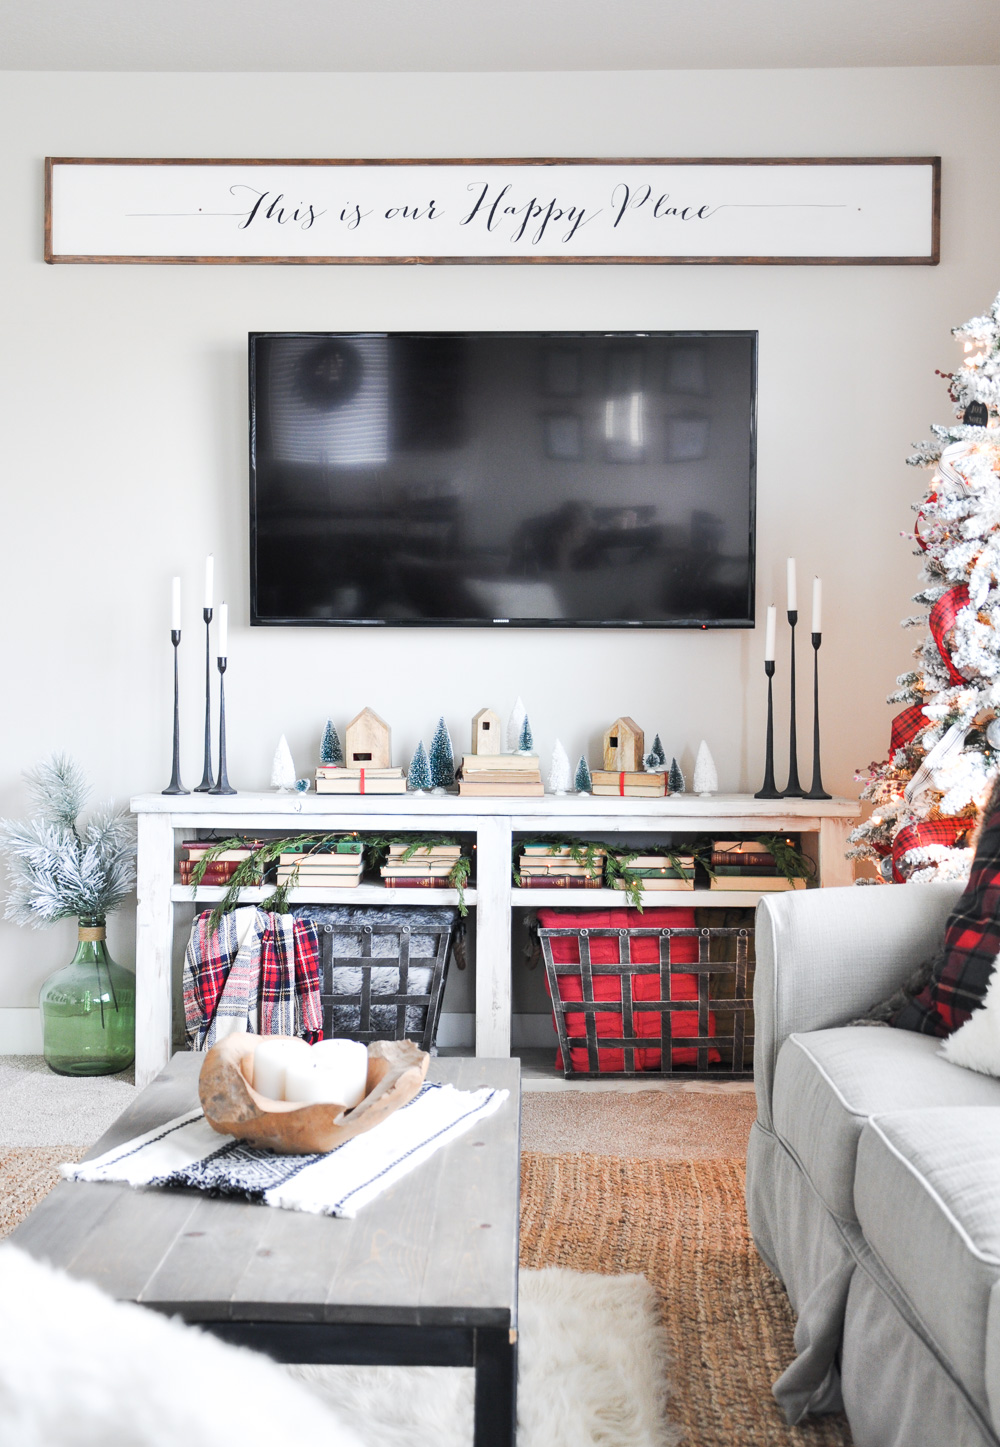 Come take a peek into this Living Room all decorated for Christmas and get a few tips on Christmas Mantel Decor!